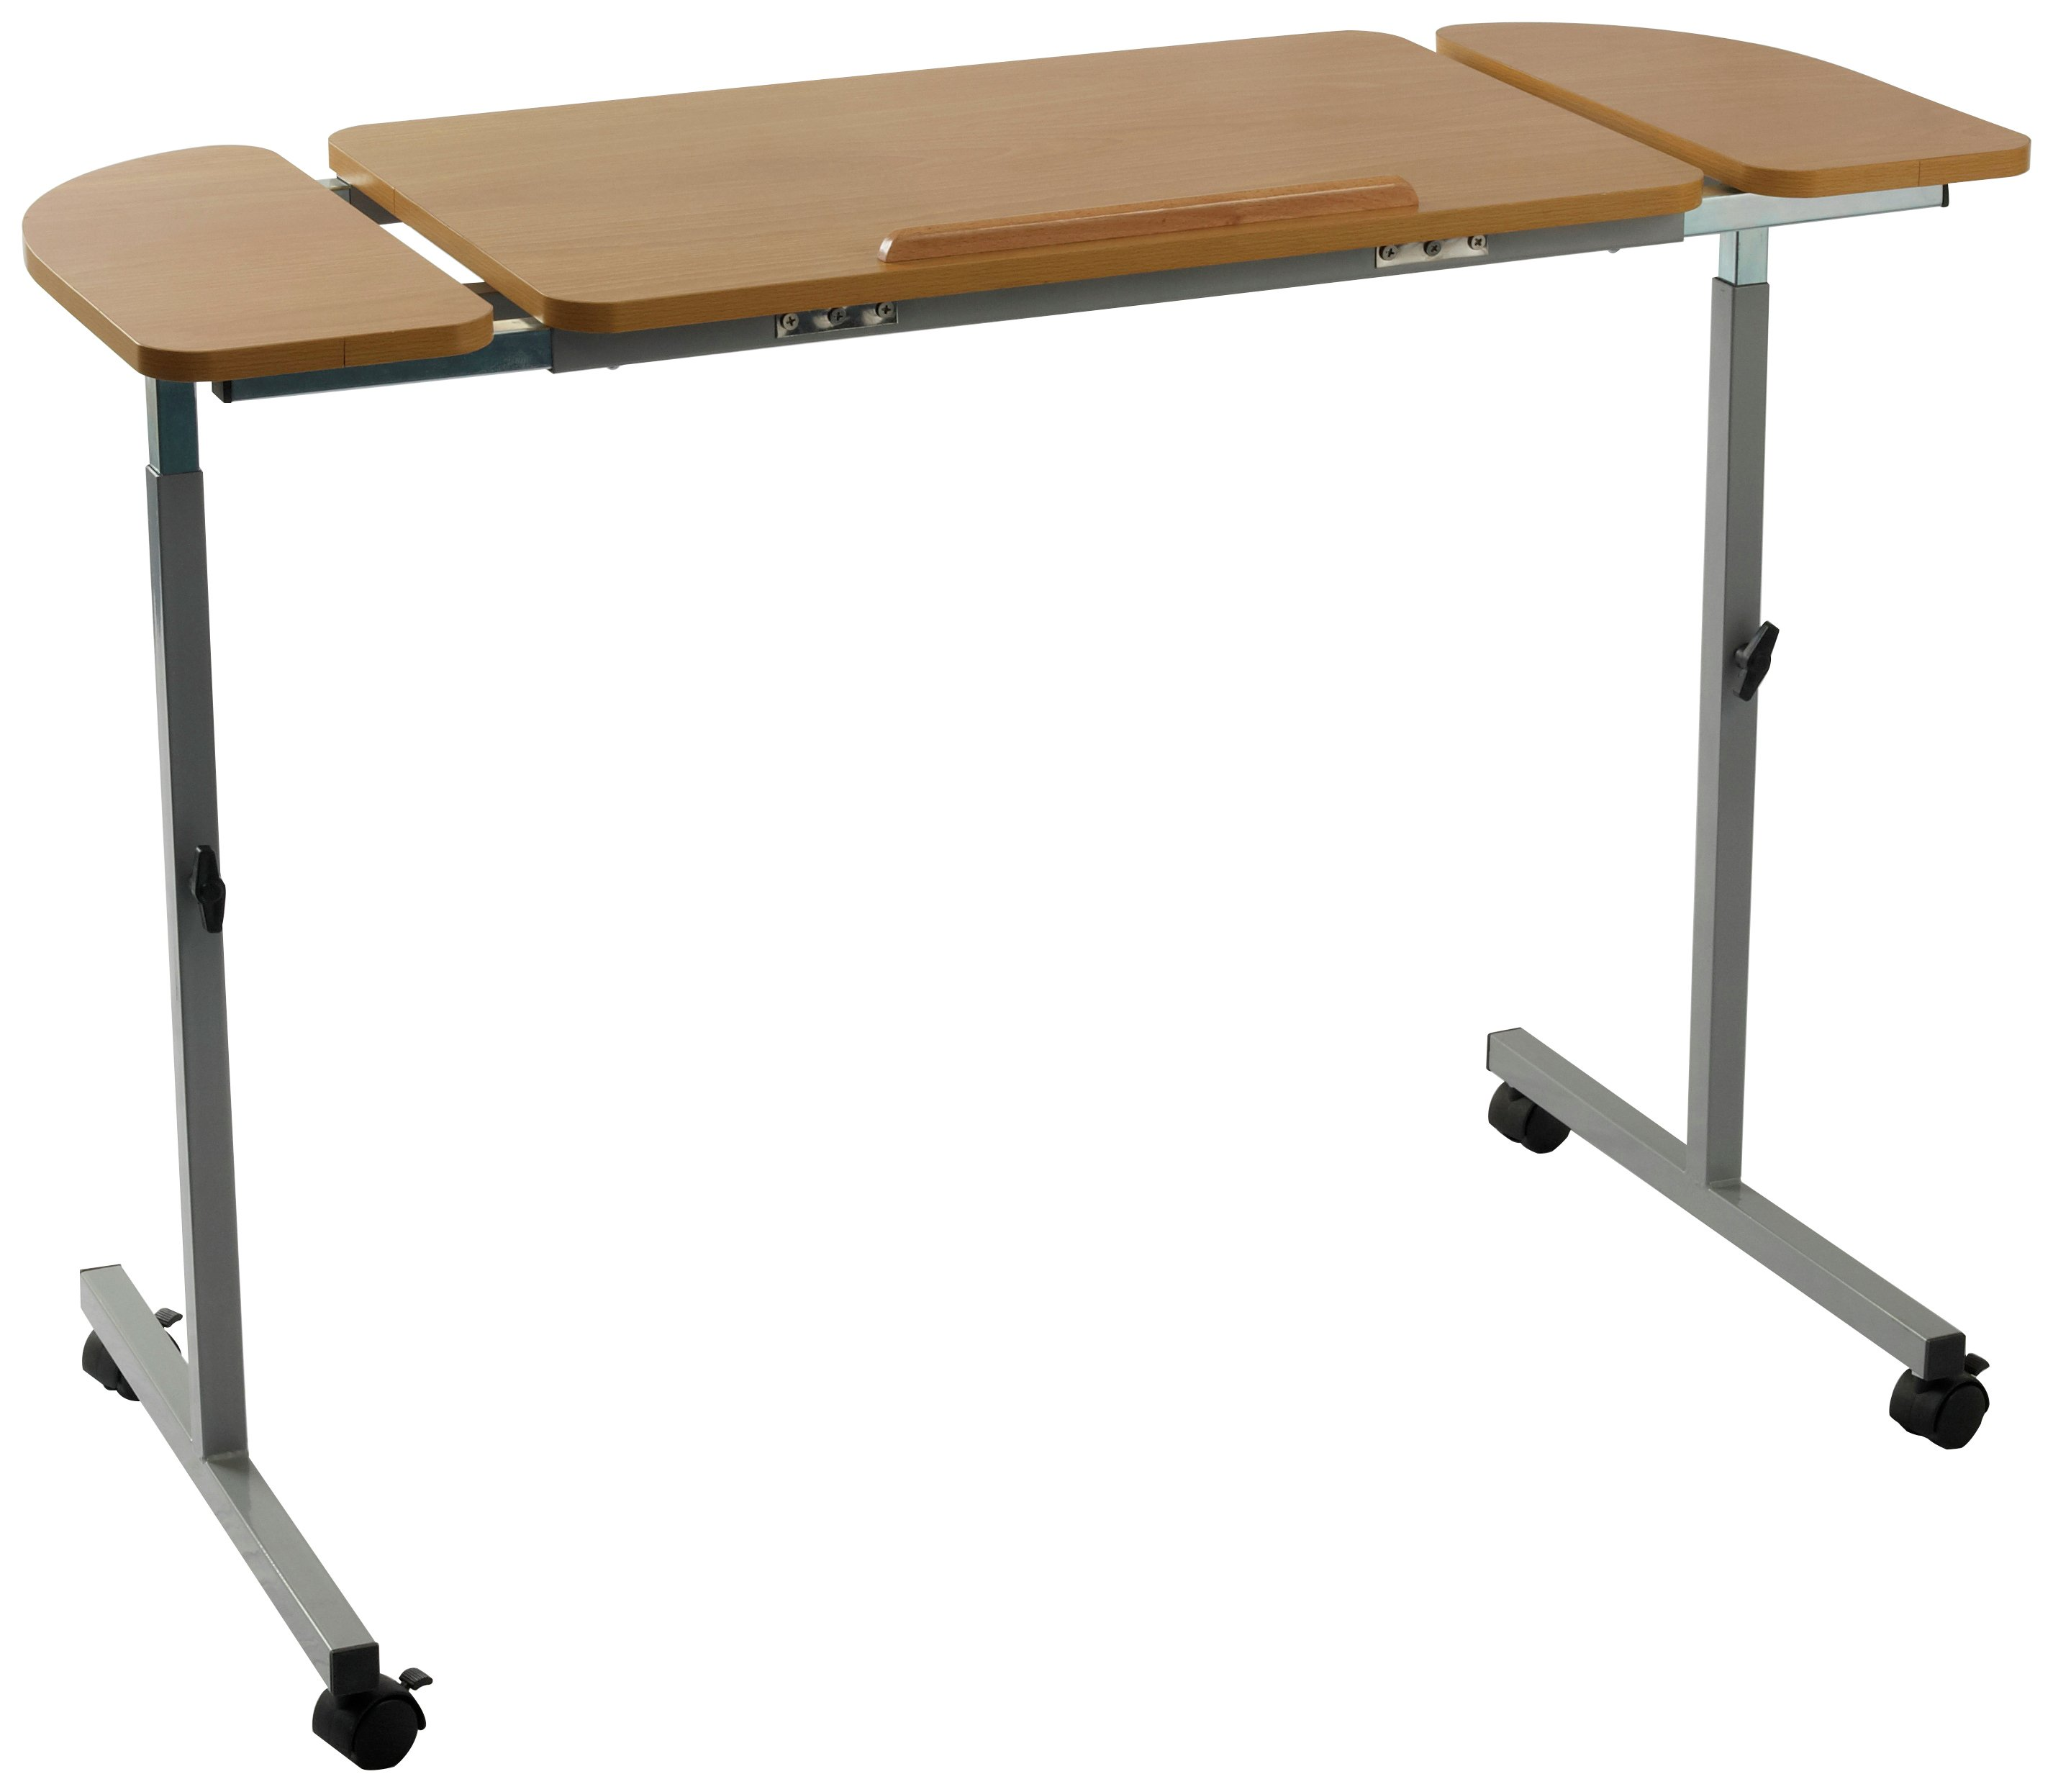 over chair tables uk the ball adjustable curved overbed table  40cm depth